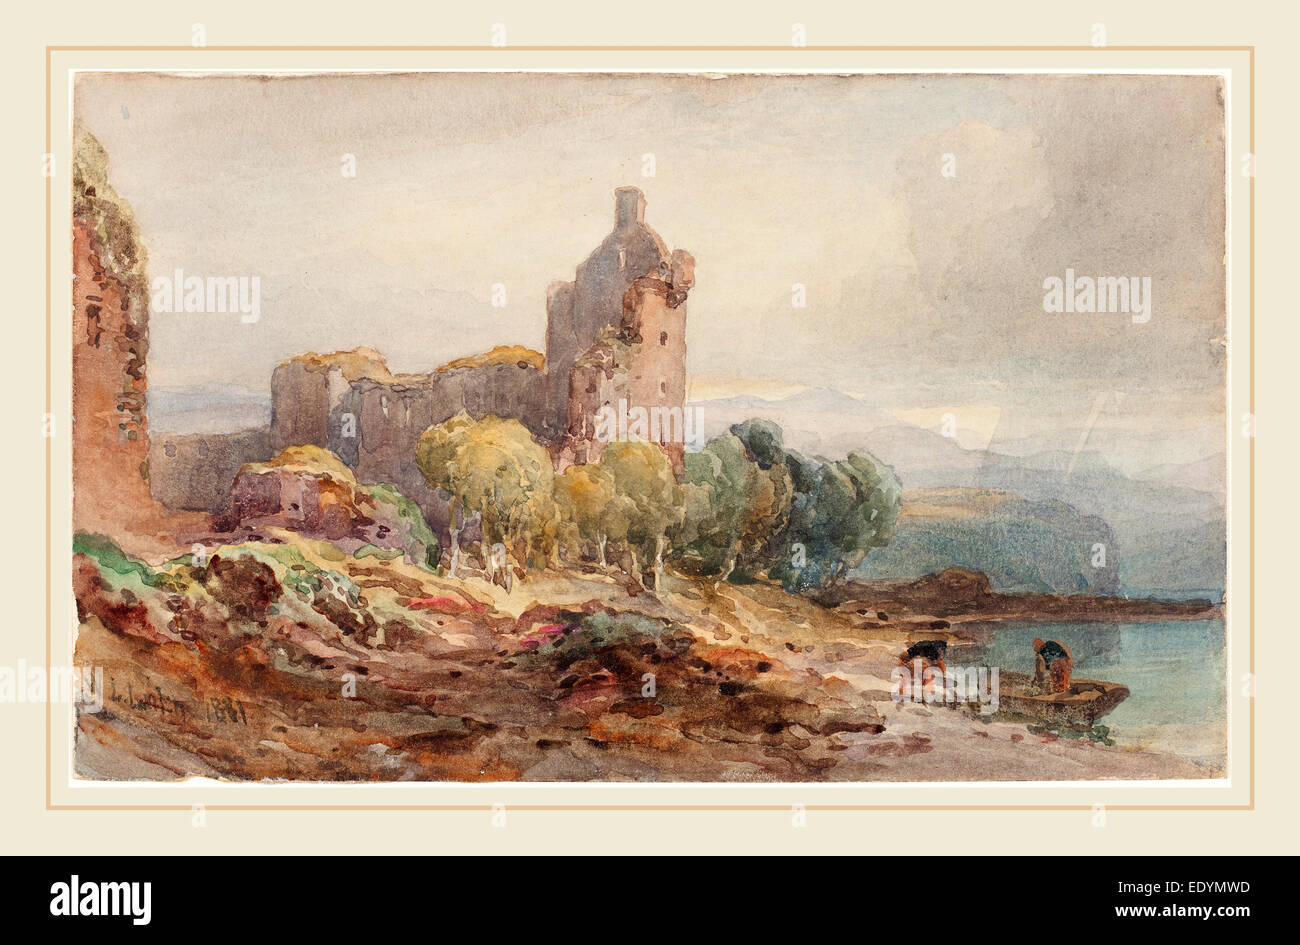 William Leighton Leitch, British (1804-1883), A Ruined Castle on a Lake, 1881, watercolor over graphite on wove - Stock Image